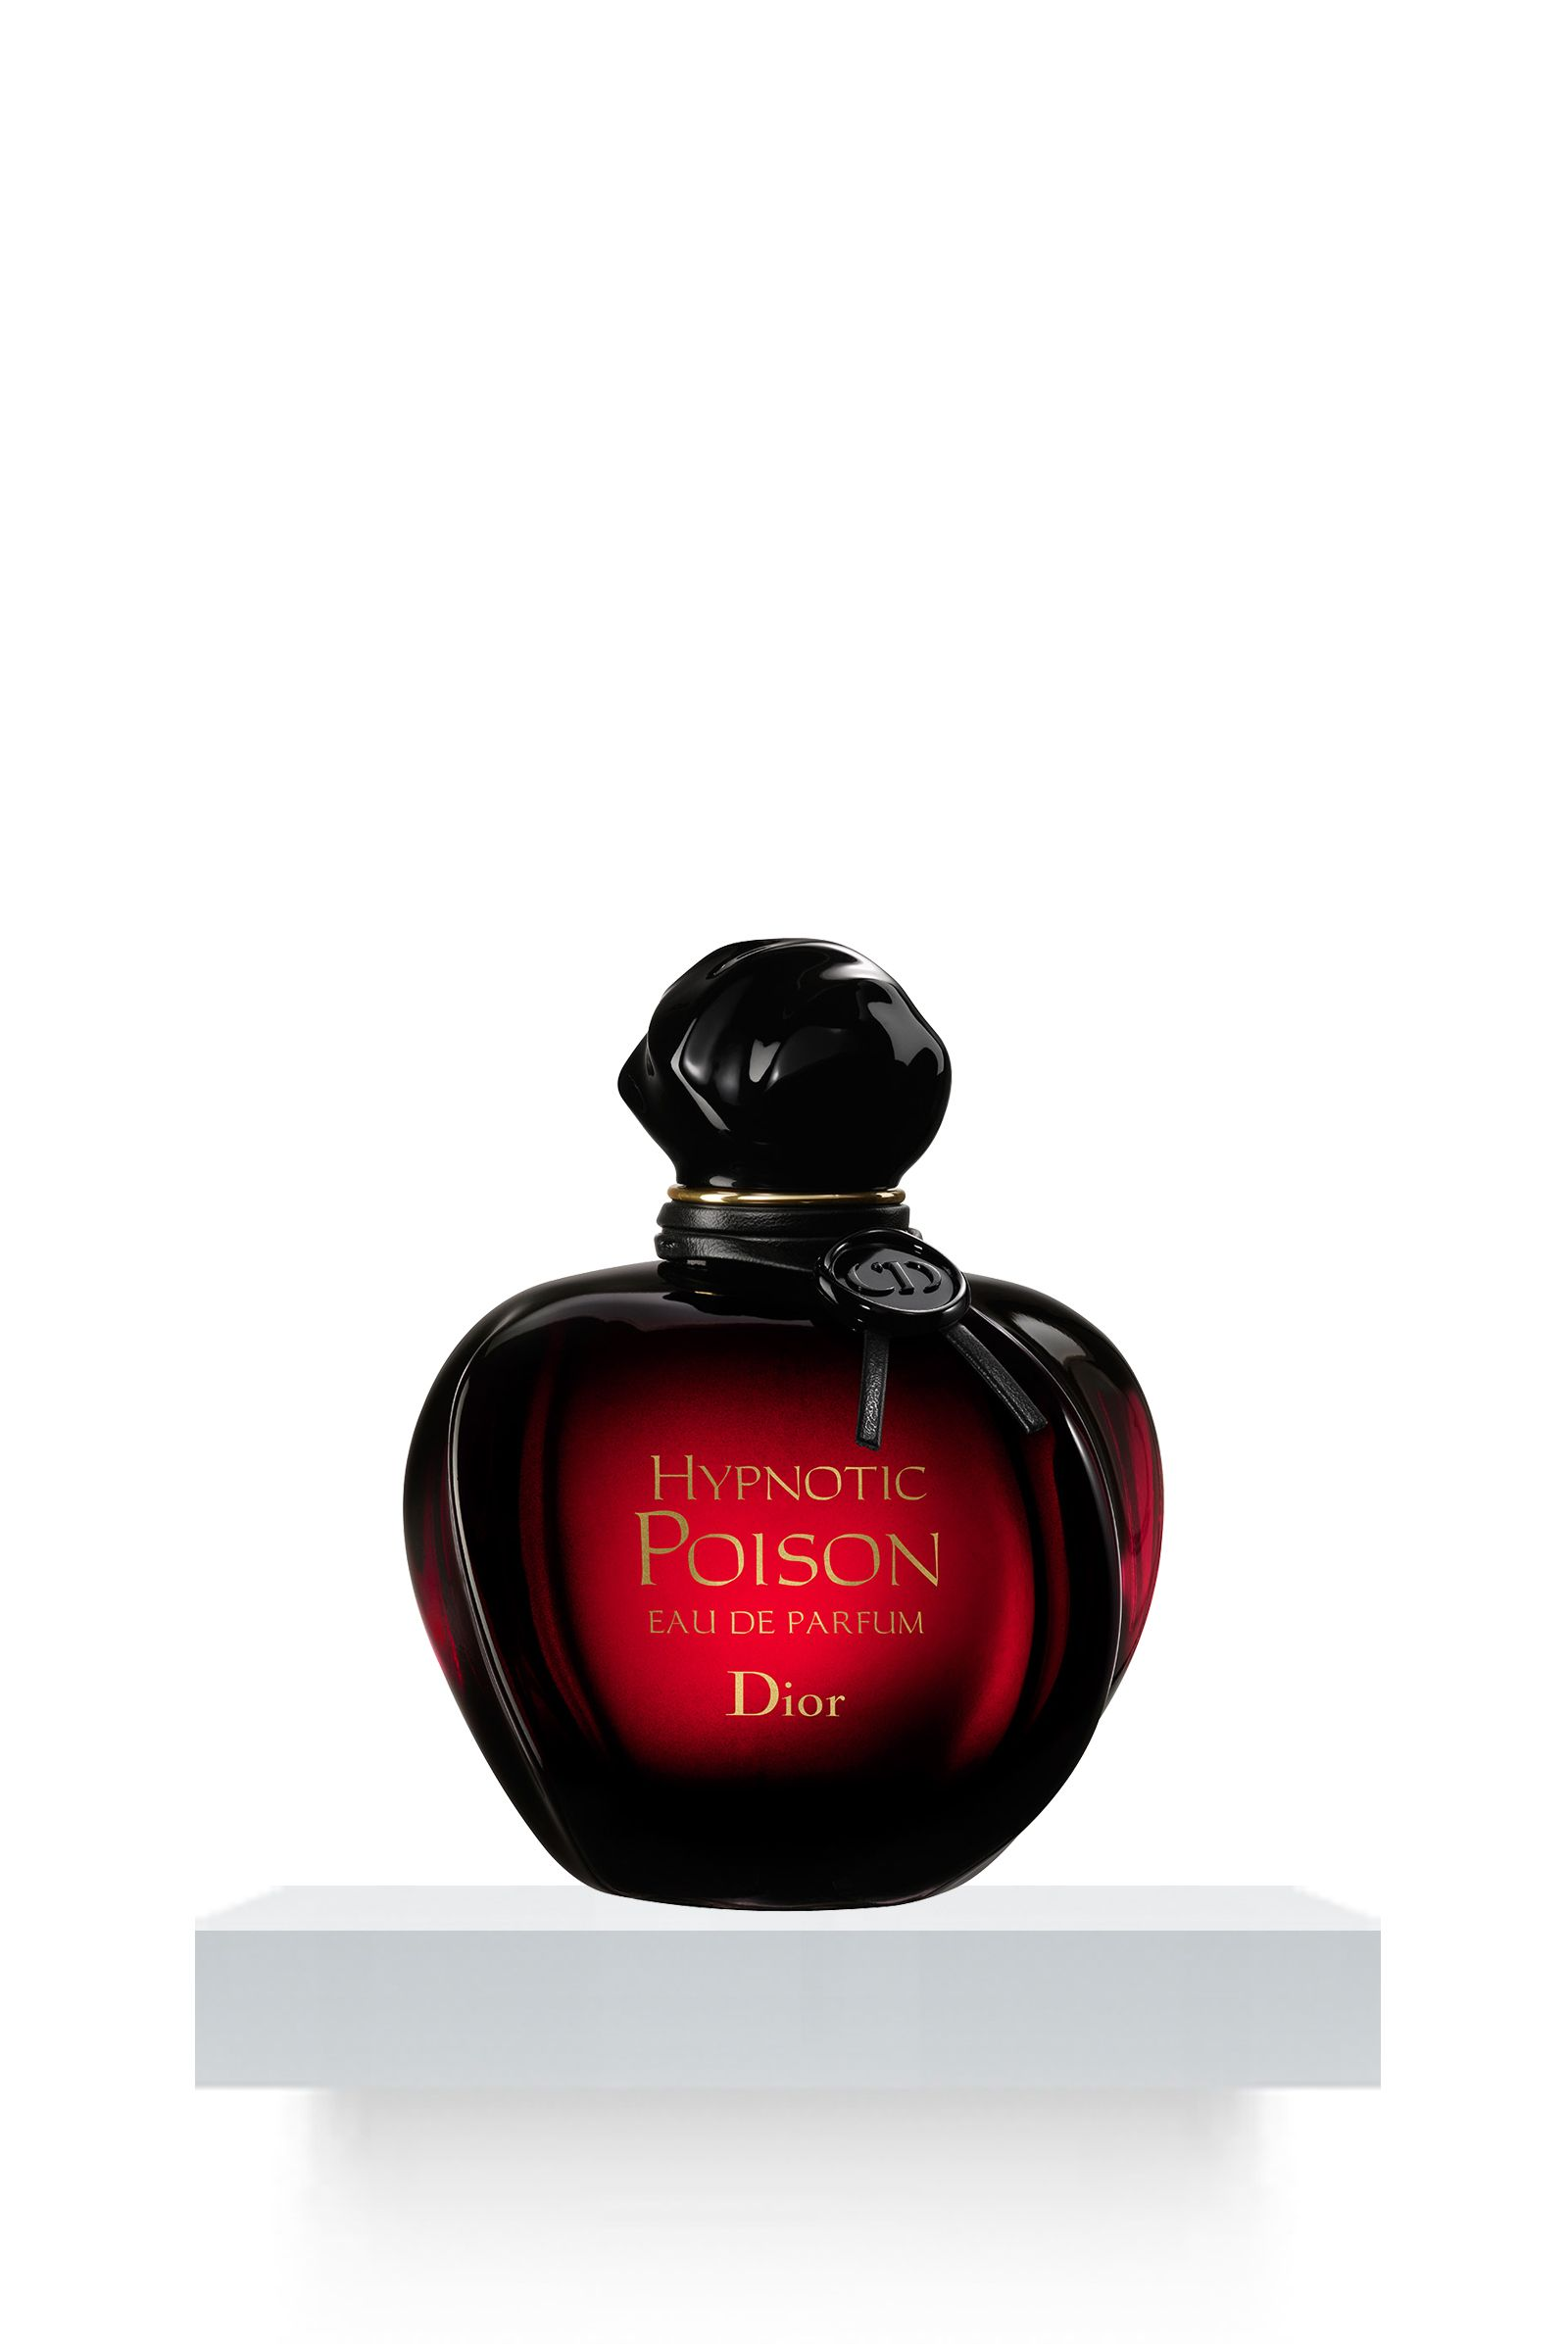 Hypnotic Poison Eau de Parfum 50ml